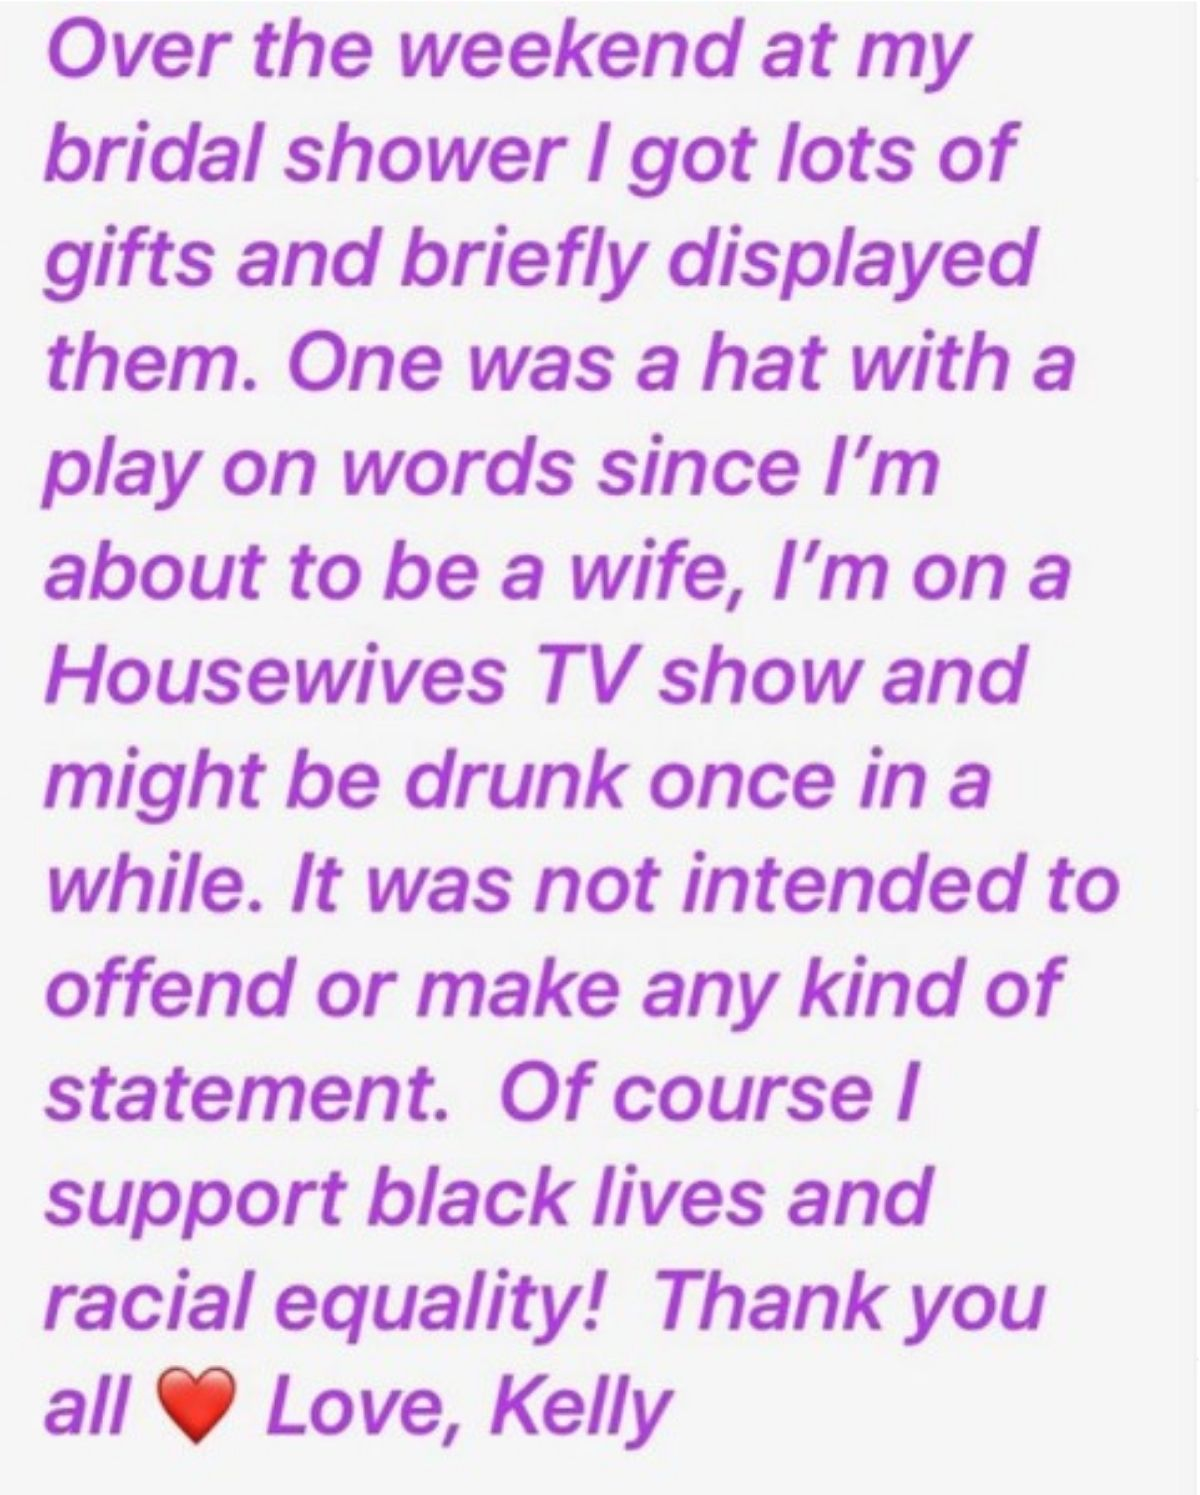 Kelly Dodd posts apology for posting 'Drunk Wives Matter' to Instagram. Claims she meant no offense.